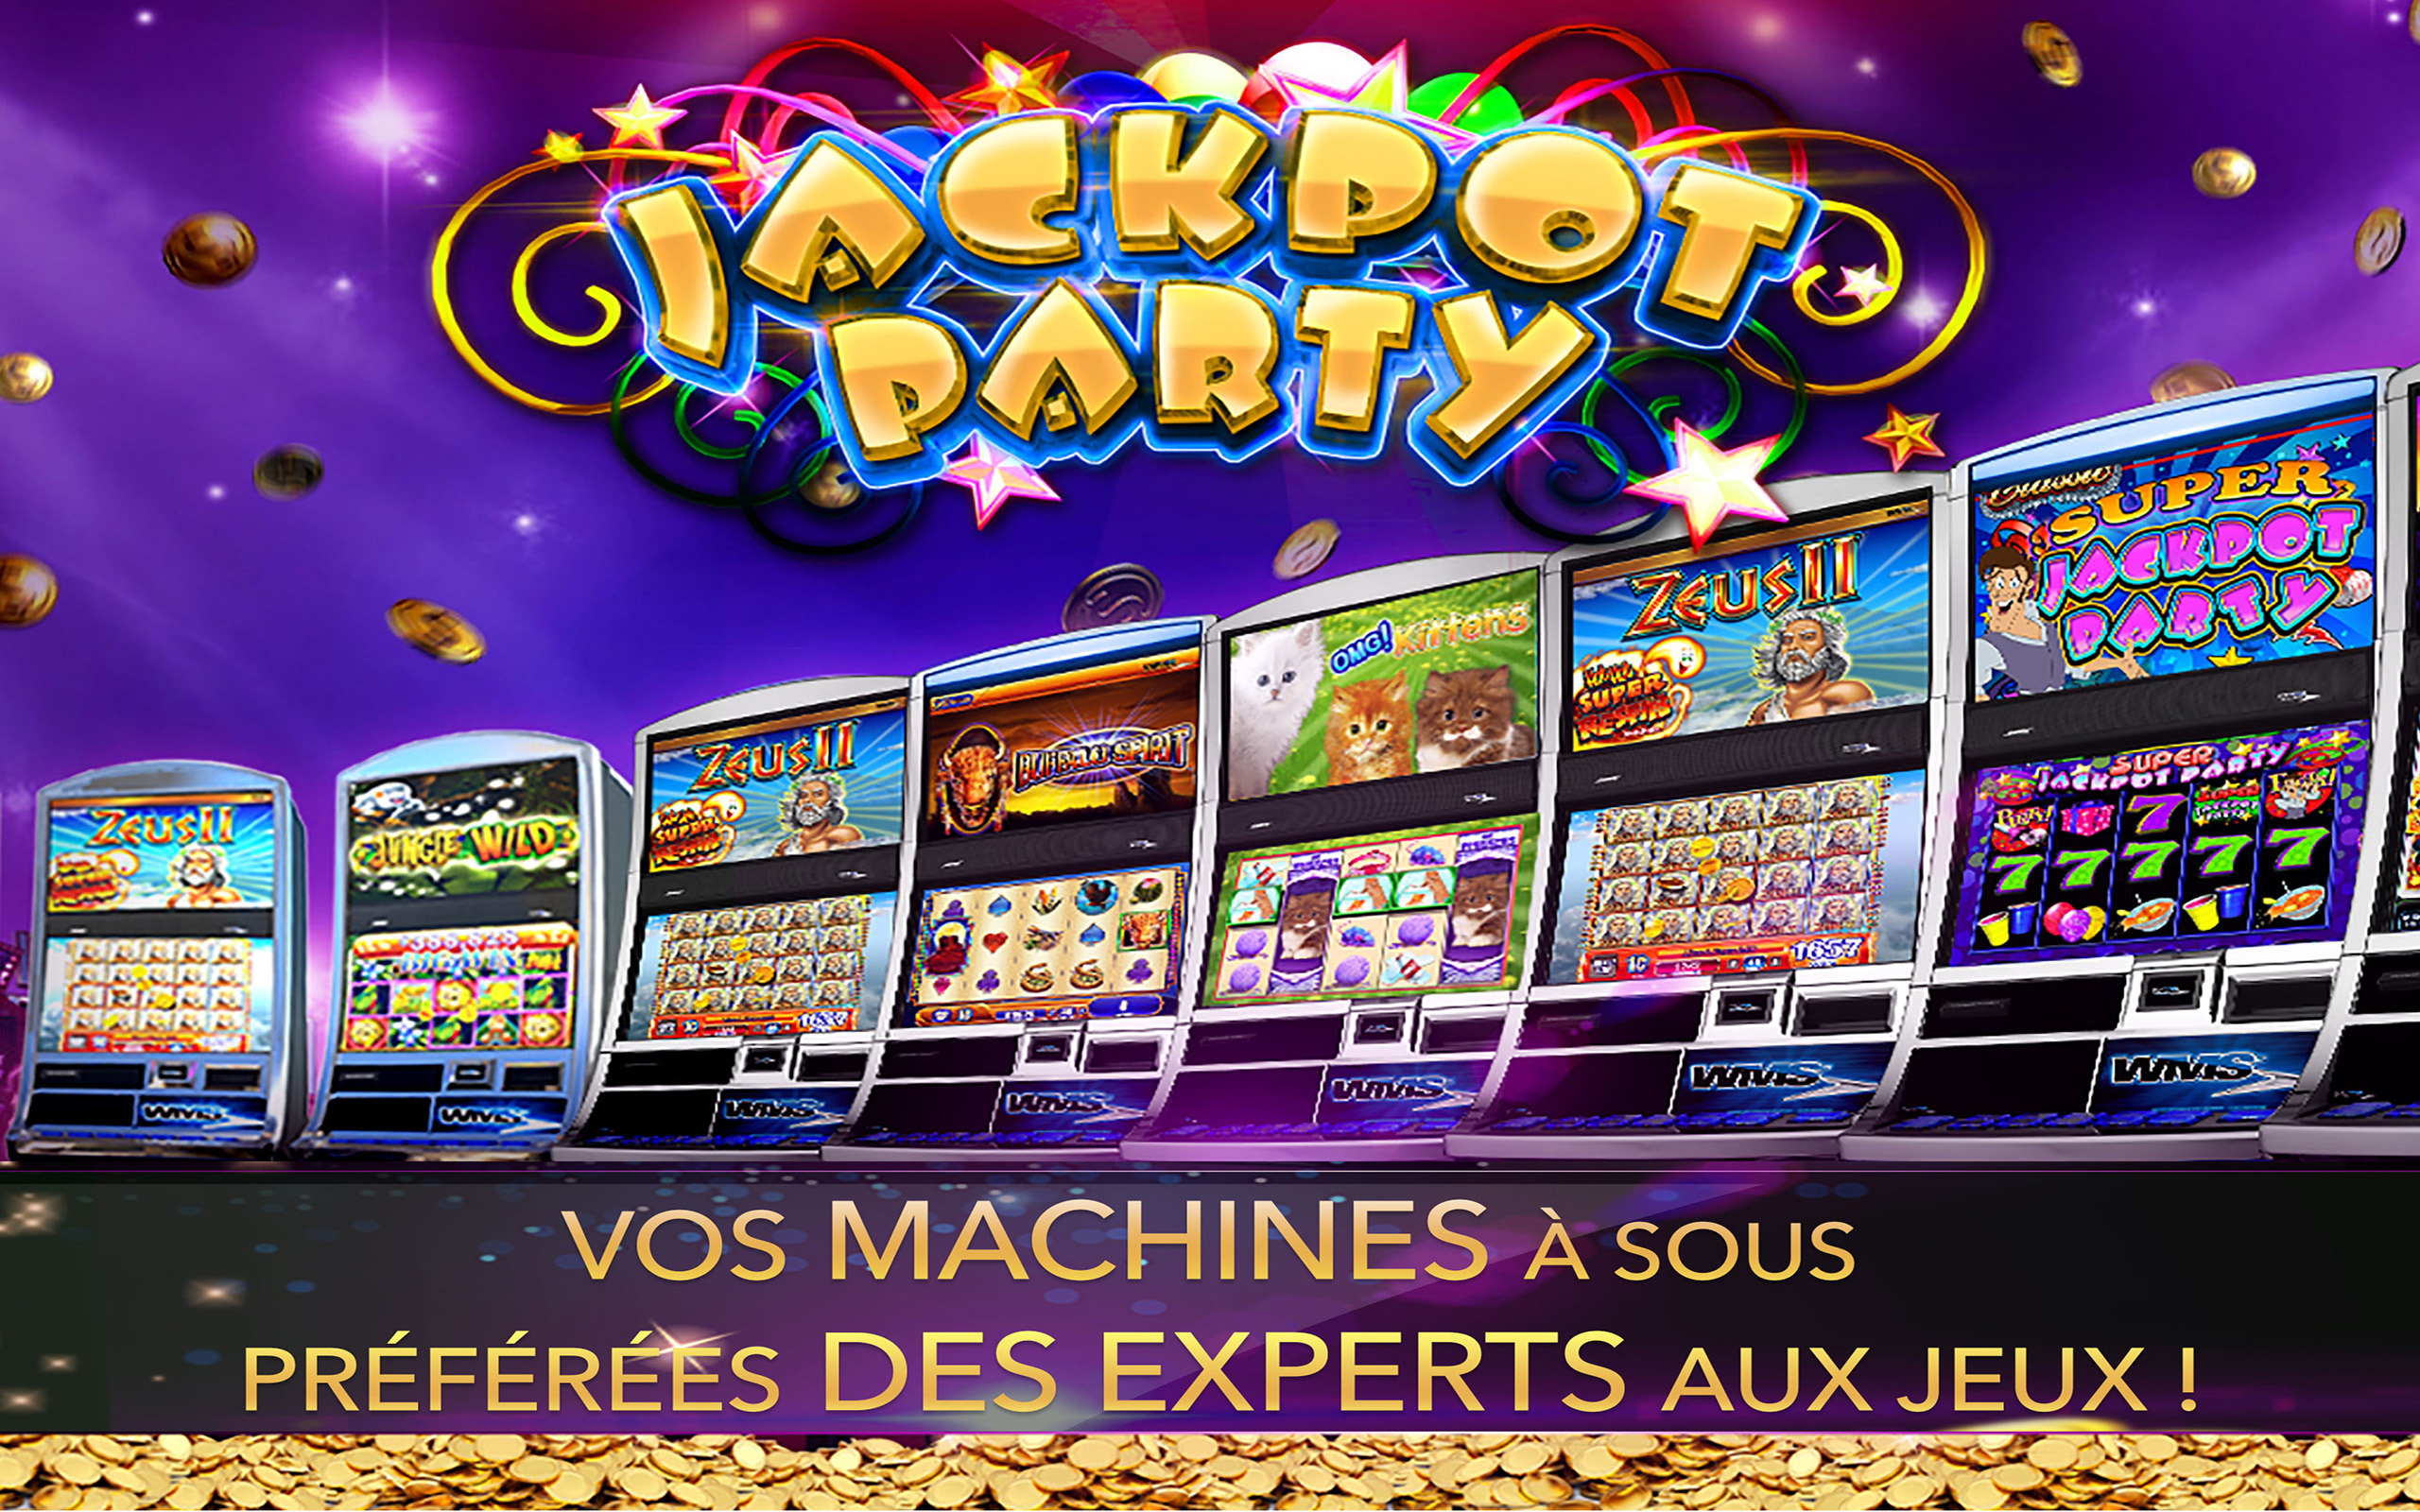 Casino slot games for free